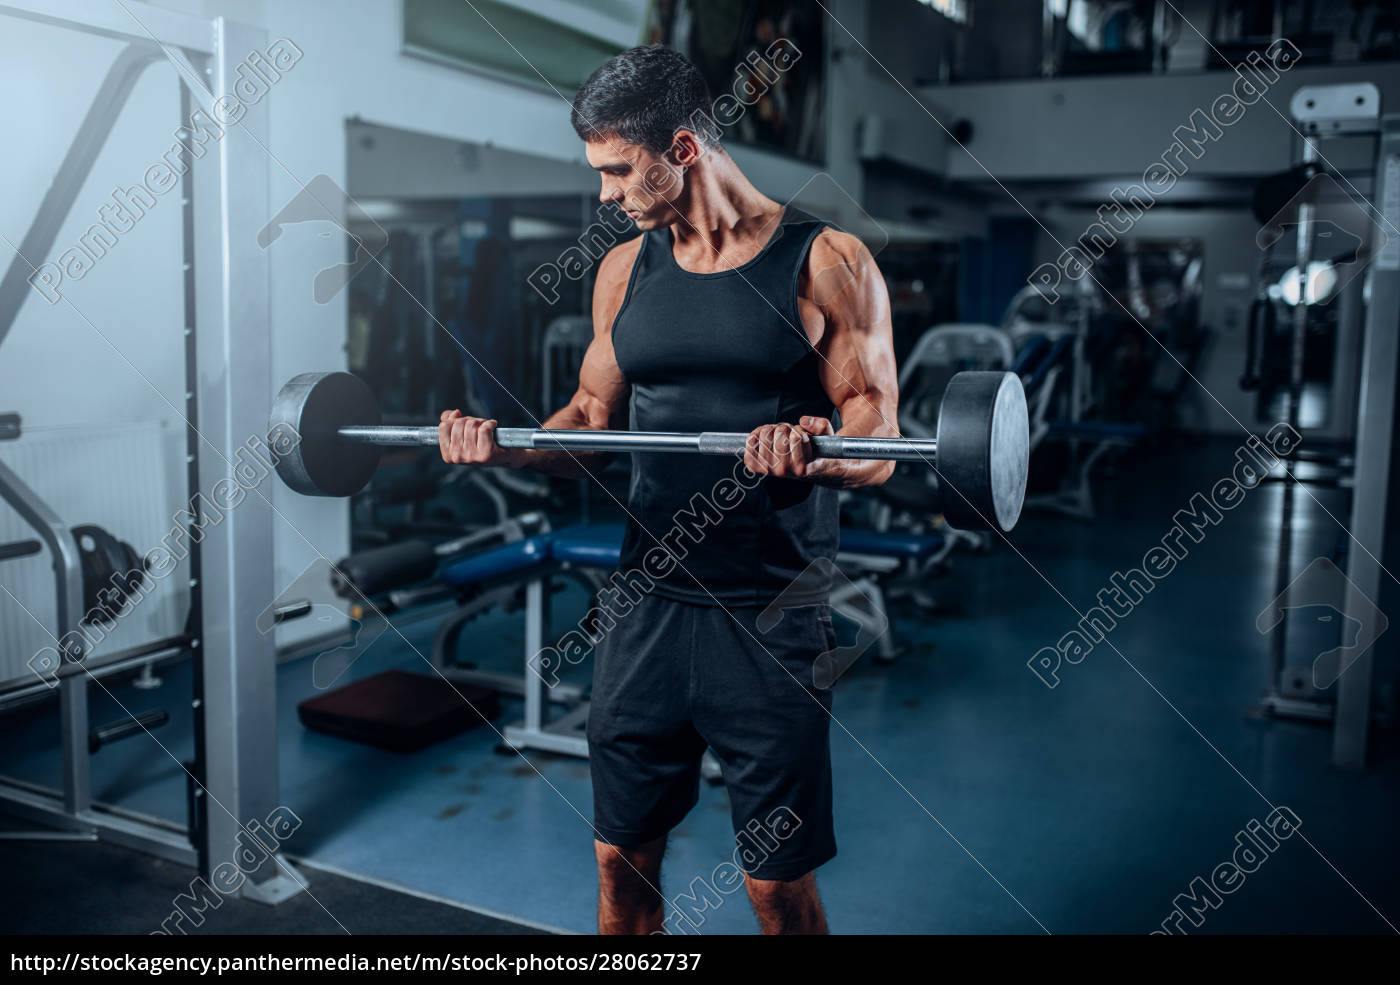 tanned, muscular, man, workout, with, barbell - 28062737